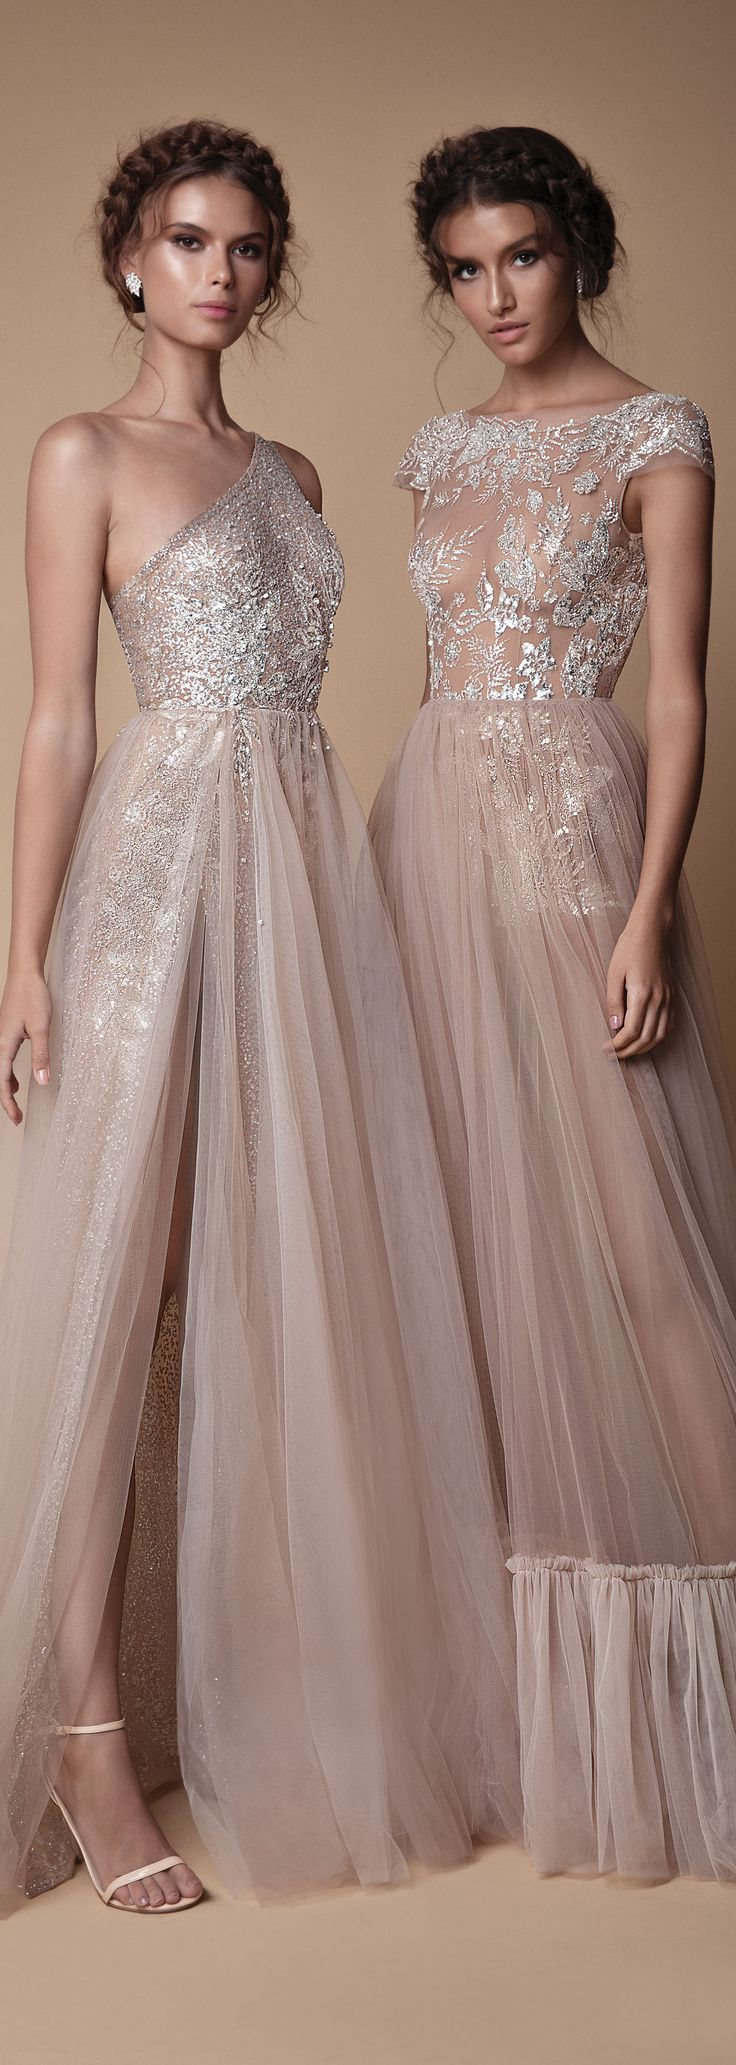 Shimmer, sparkle and sheer gorgeousness. The jaw dropping, new evening collection from @berta